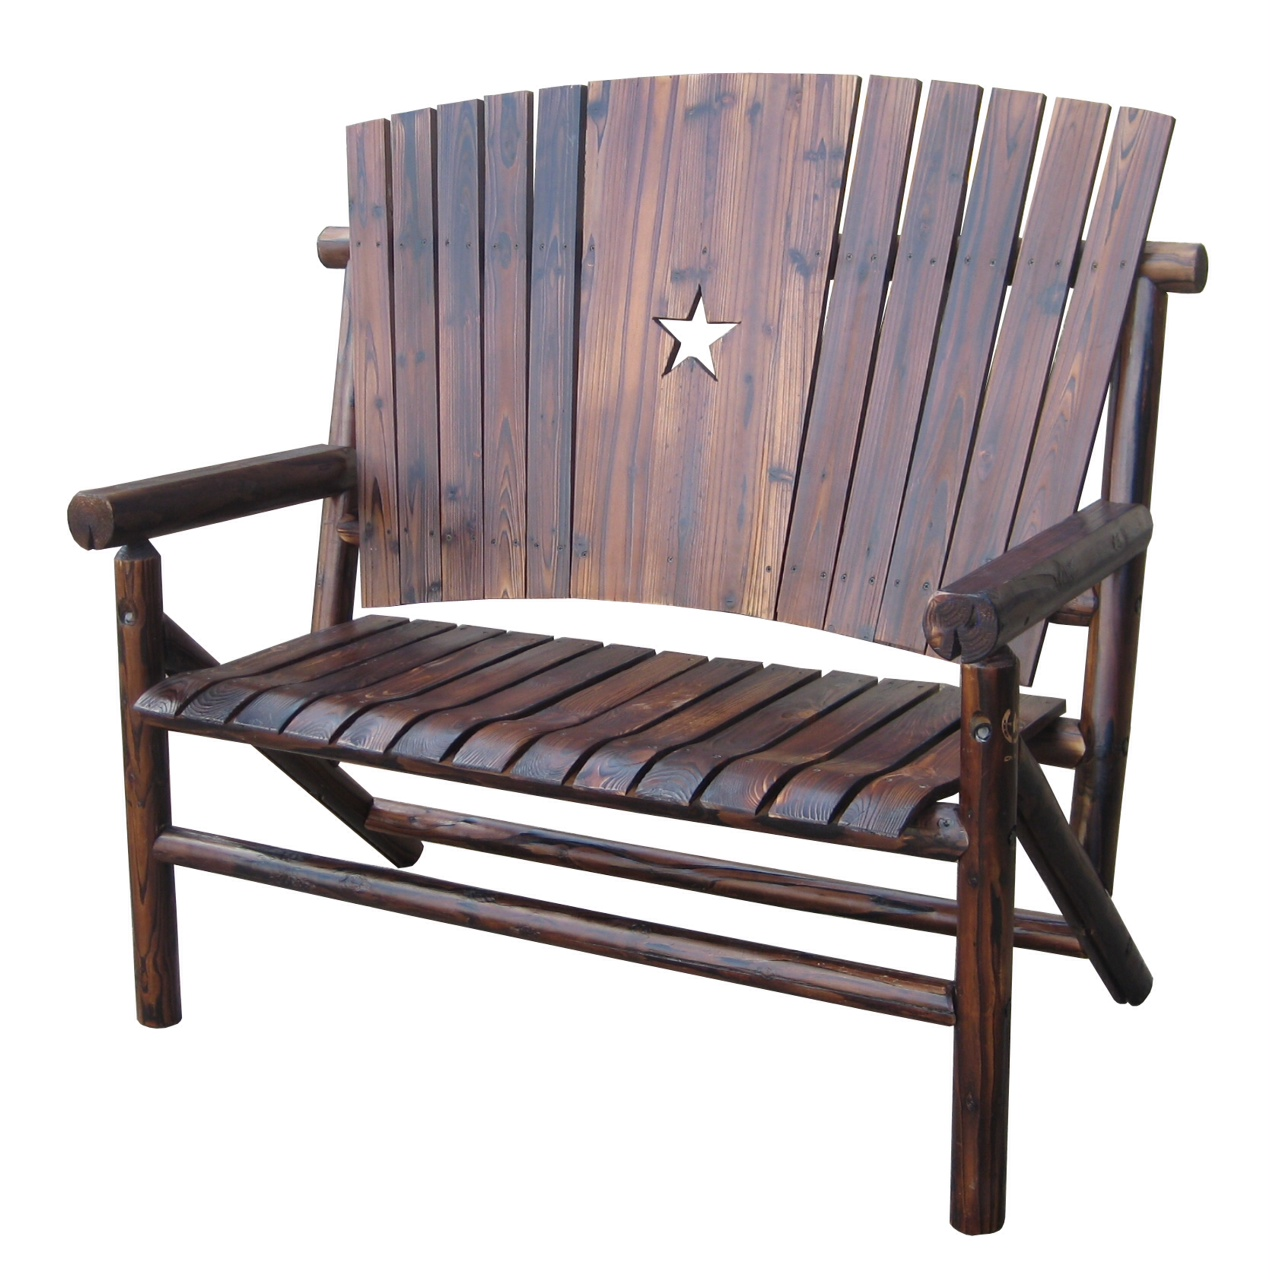 Texas Double Bench with the Texas Lone Star